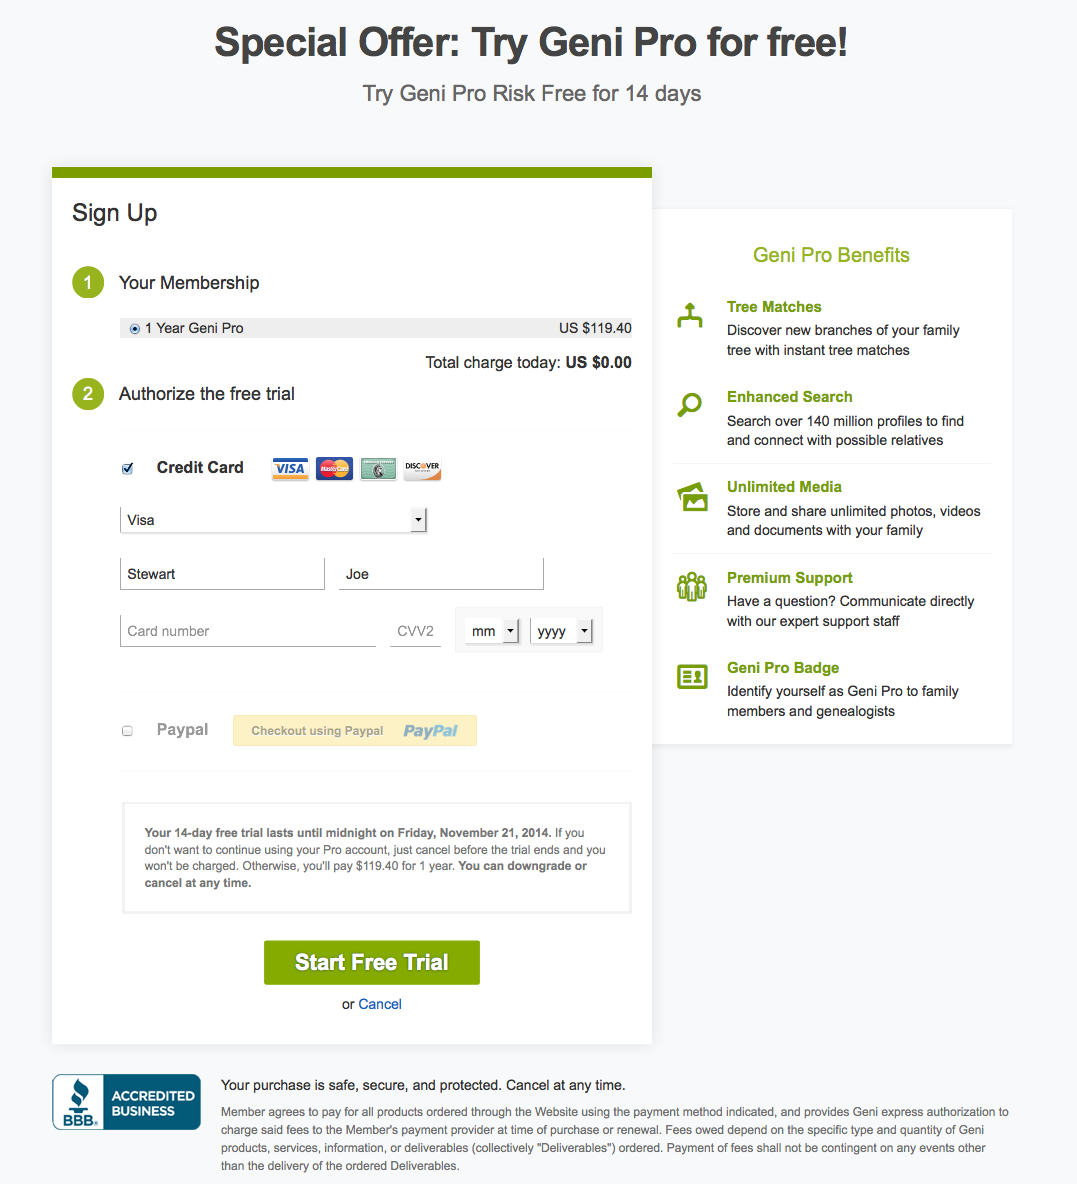 Geni_-_Sign_Up_2014_431690-How-To-Try-Geni-Pro-for-Free.png